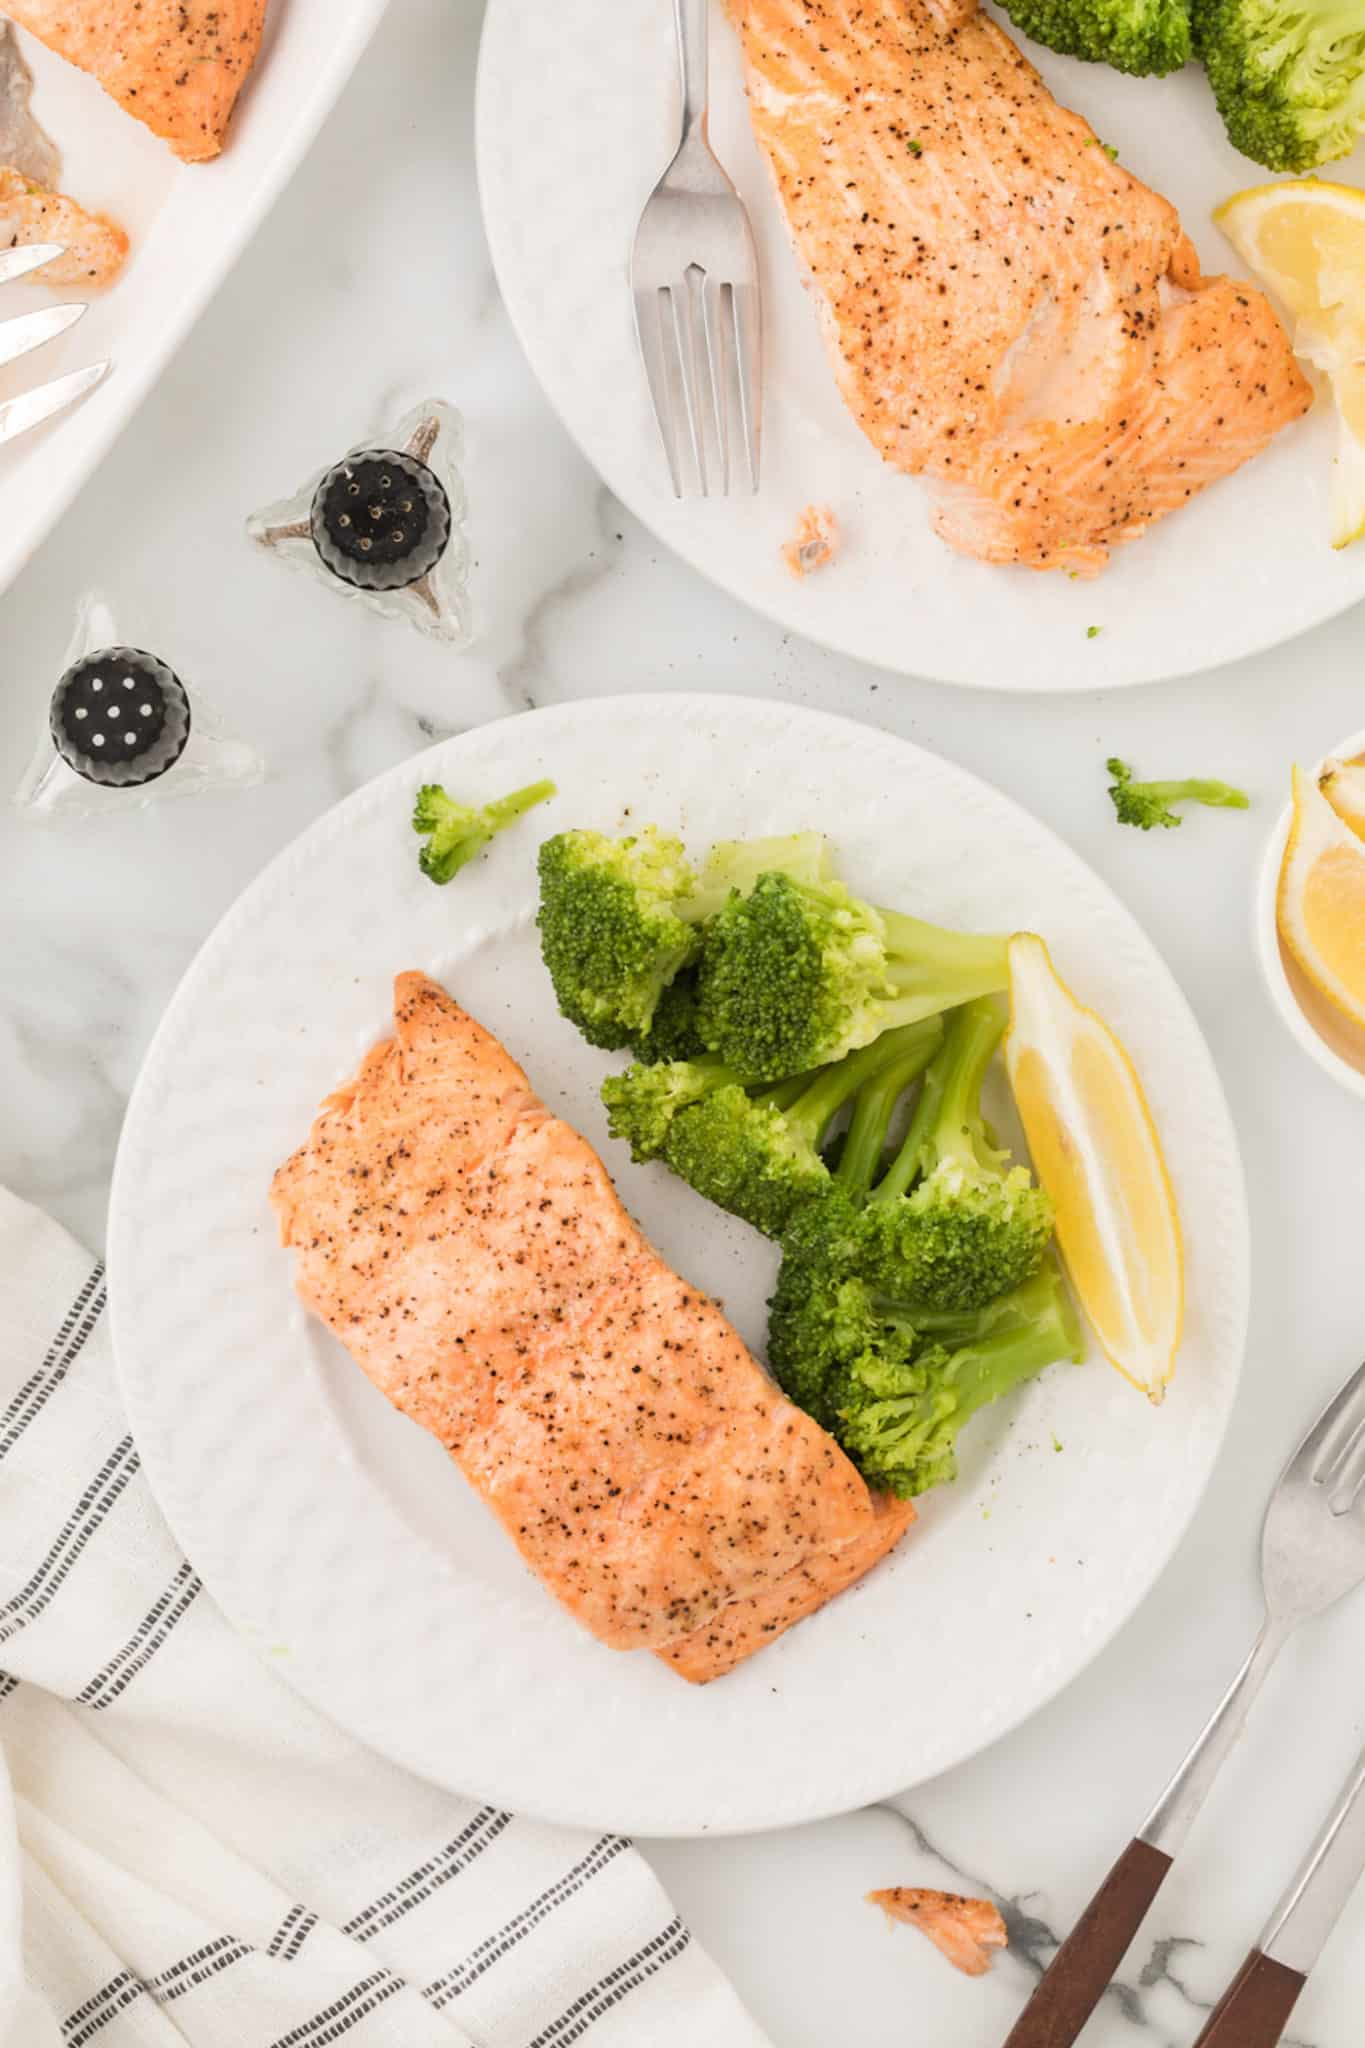 two plates of salmon dinner on a tabletop